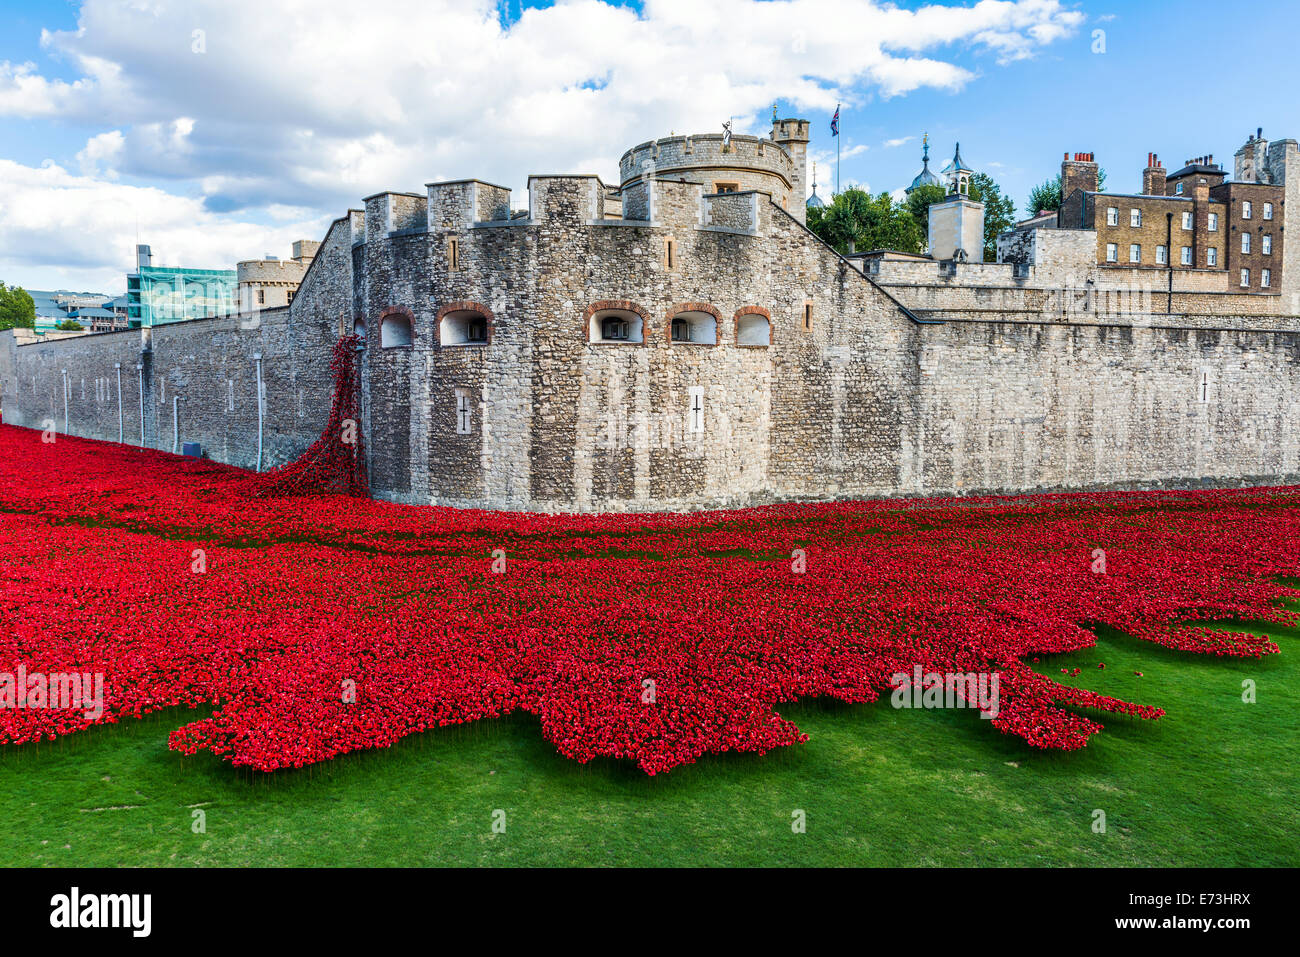 'Blood Swept Lands and Seas of Red' - the art installation at Tower of London  features 888,246 ceramic - Stock Image